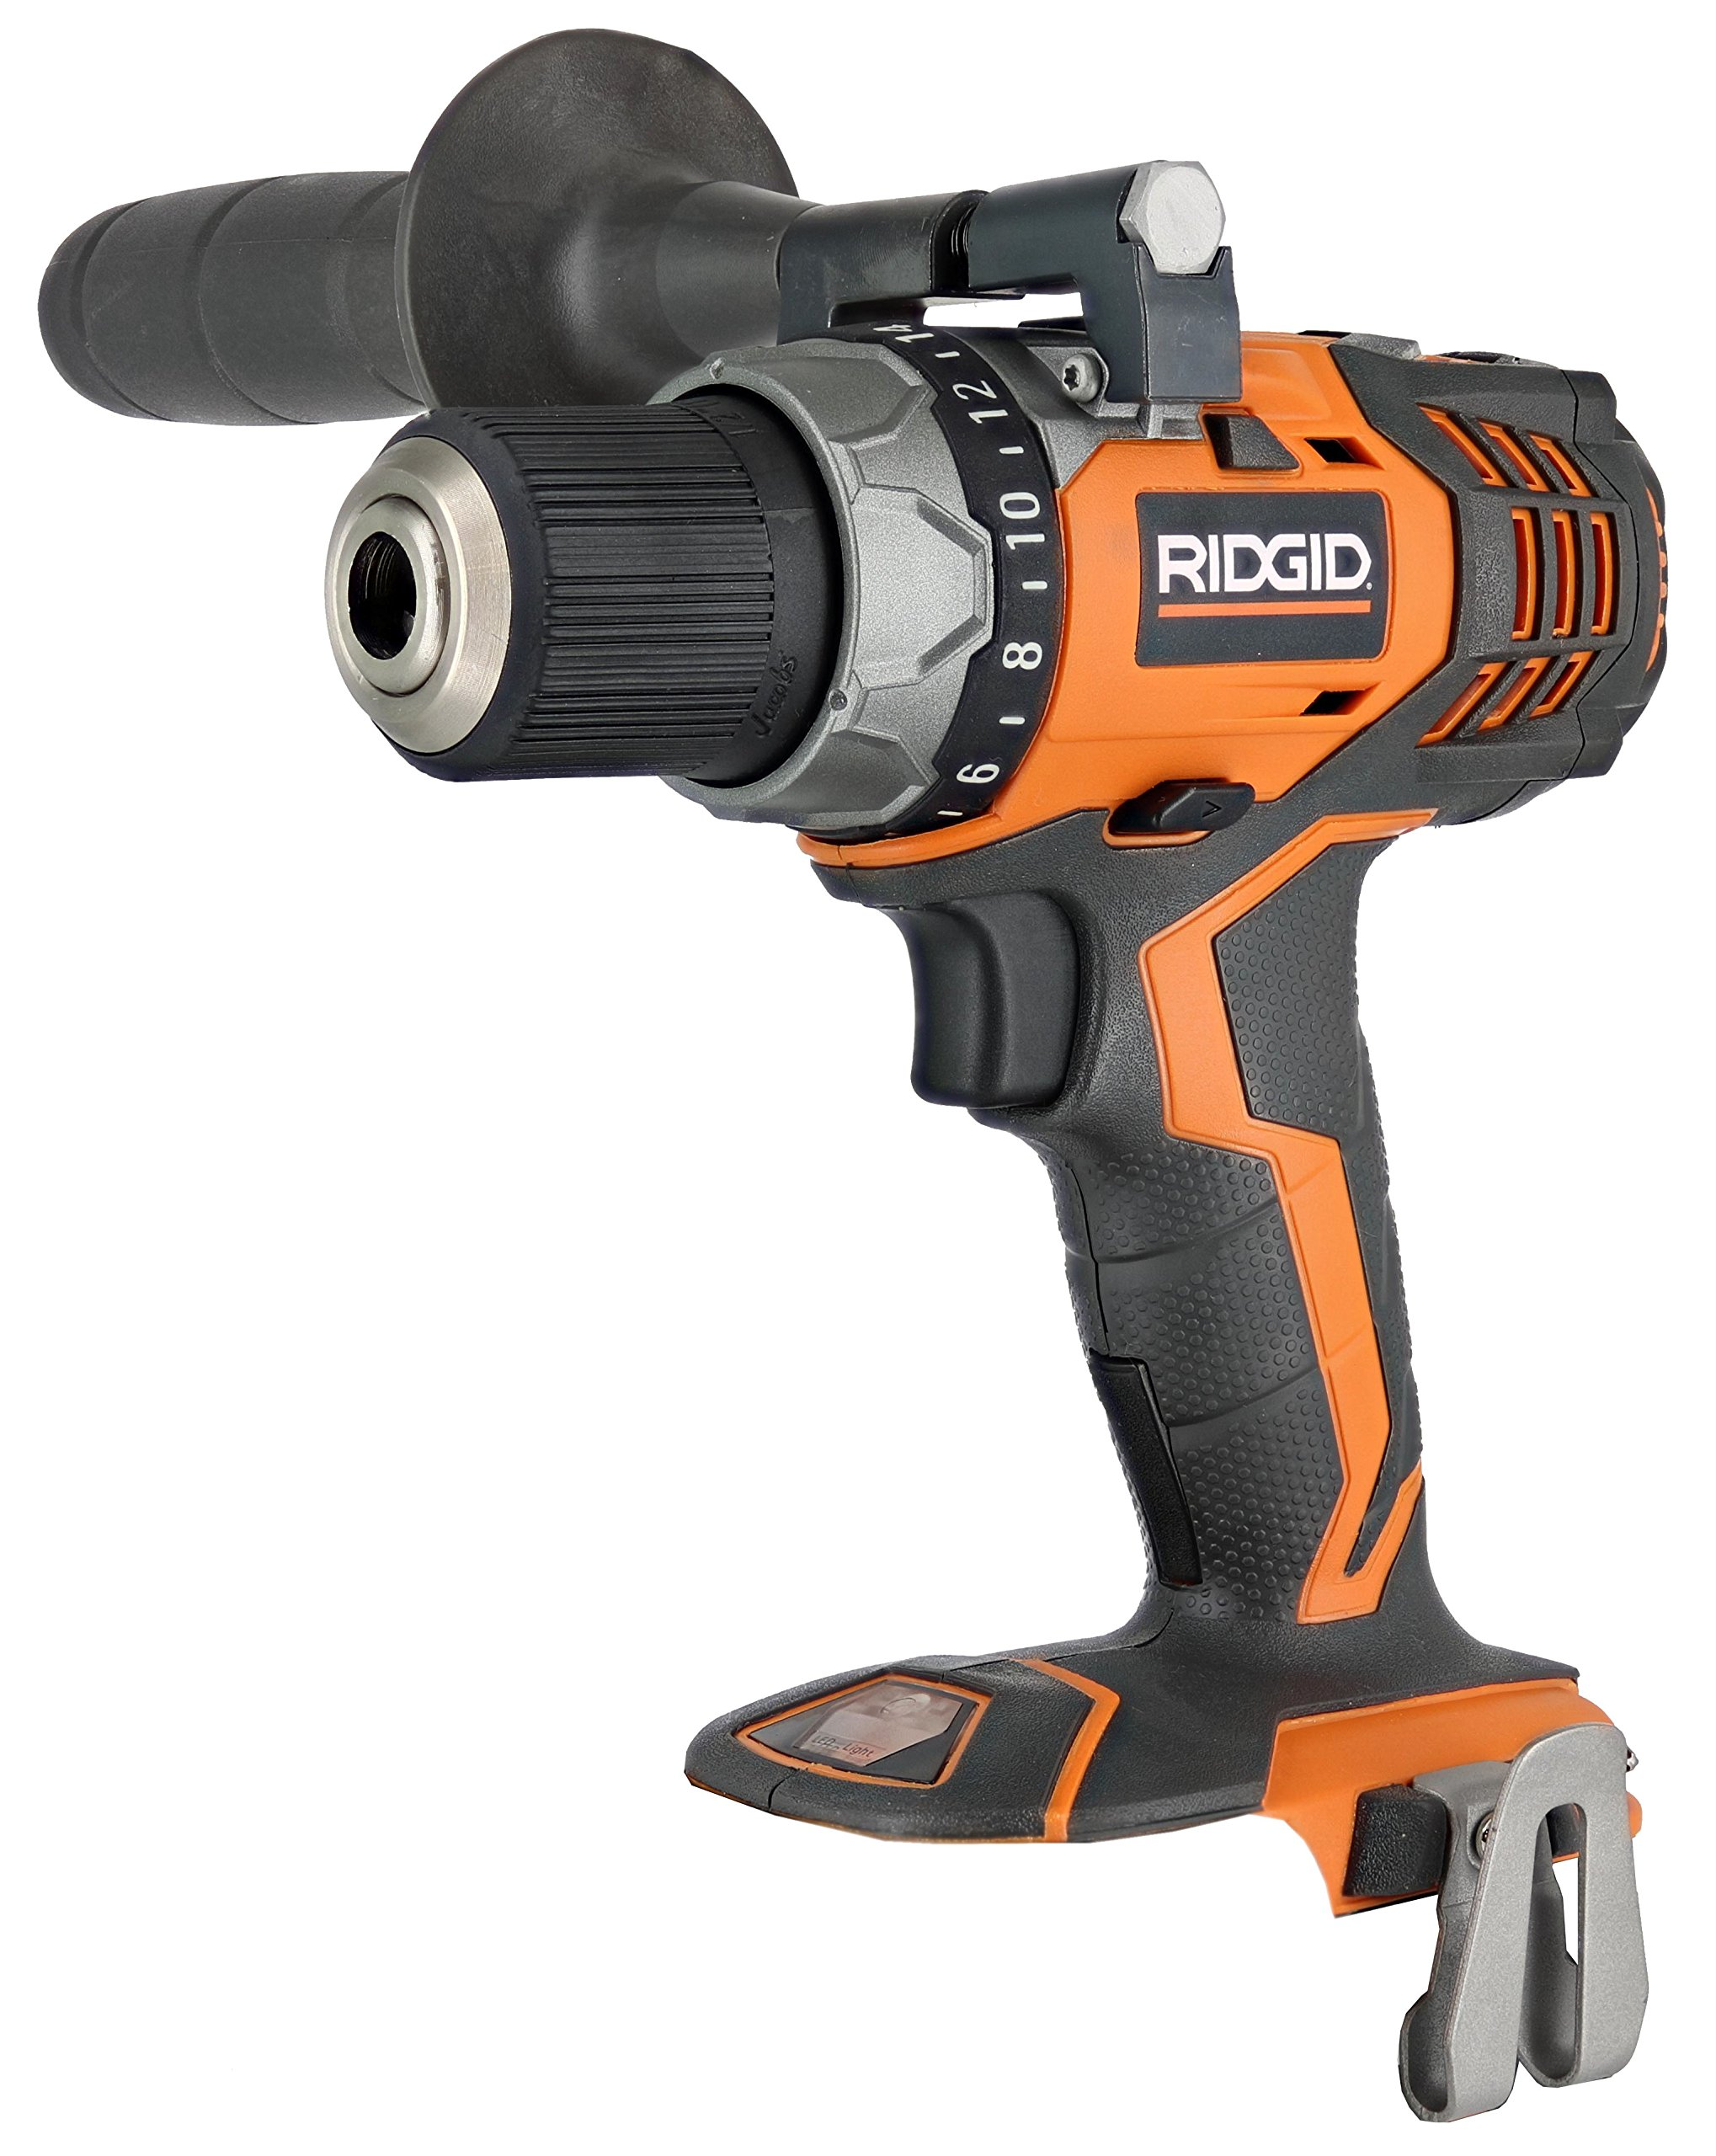 Ridgid X4 R9602 18V Lithium Ion Cordless Drill and Impact Driver Combo Kit with Soft-Sided Tool Case (2 Tools, 2 Compact Batteries, Charger, and Bag Included) by Rigid (Image #2)